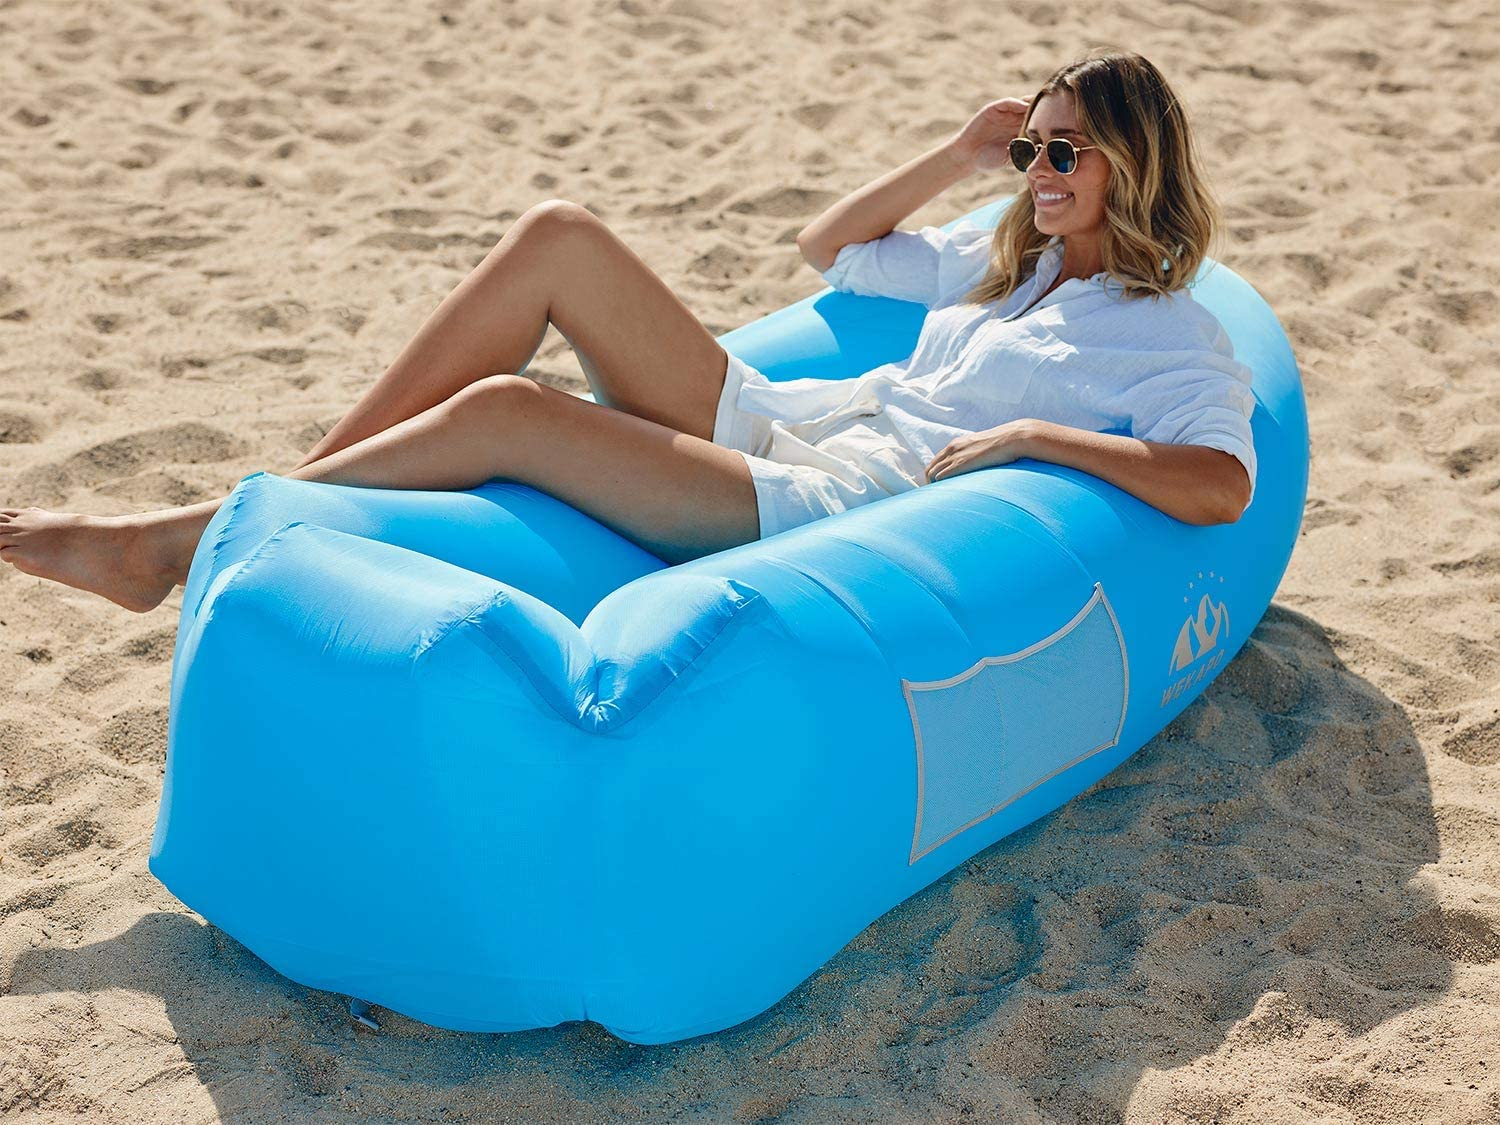 Wekapo Inflatable Lounger Air Sofa Hammock-Portable,Water Proof/& Anti-Air Leaking Design-Ideal Couch for Backyard Lakeside Beach Traveling Camping Picnics /& Music Festivals